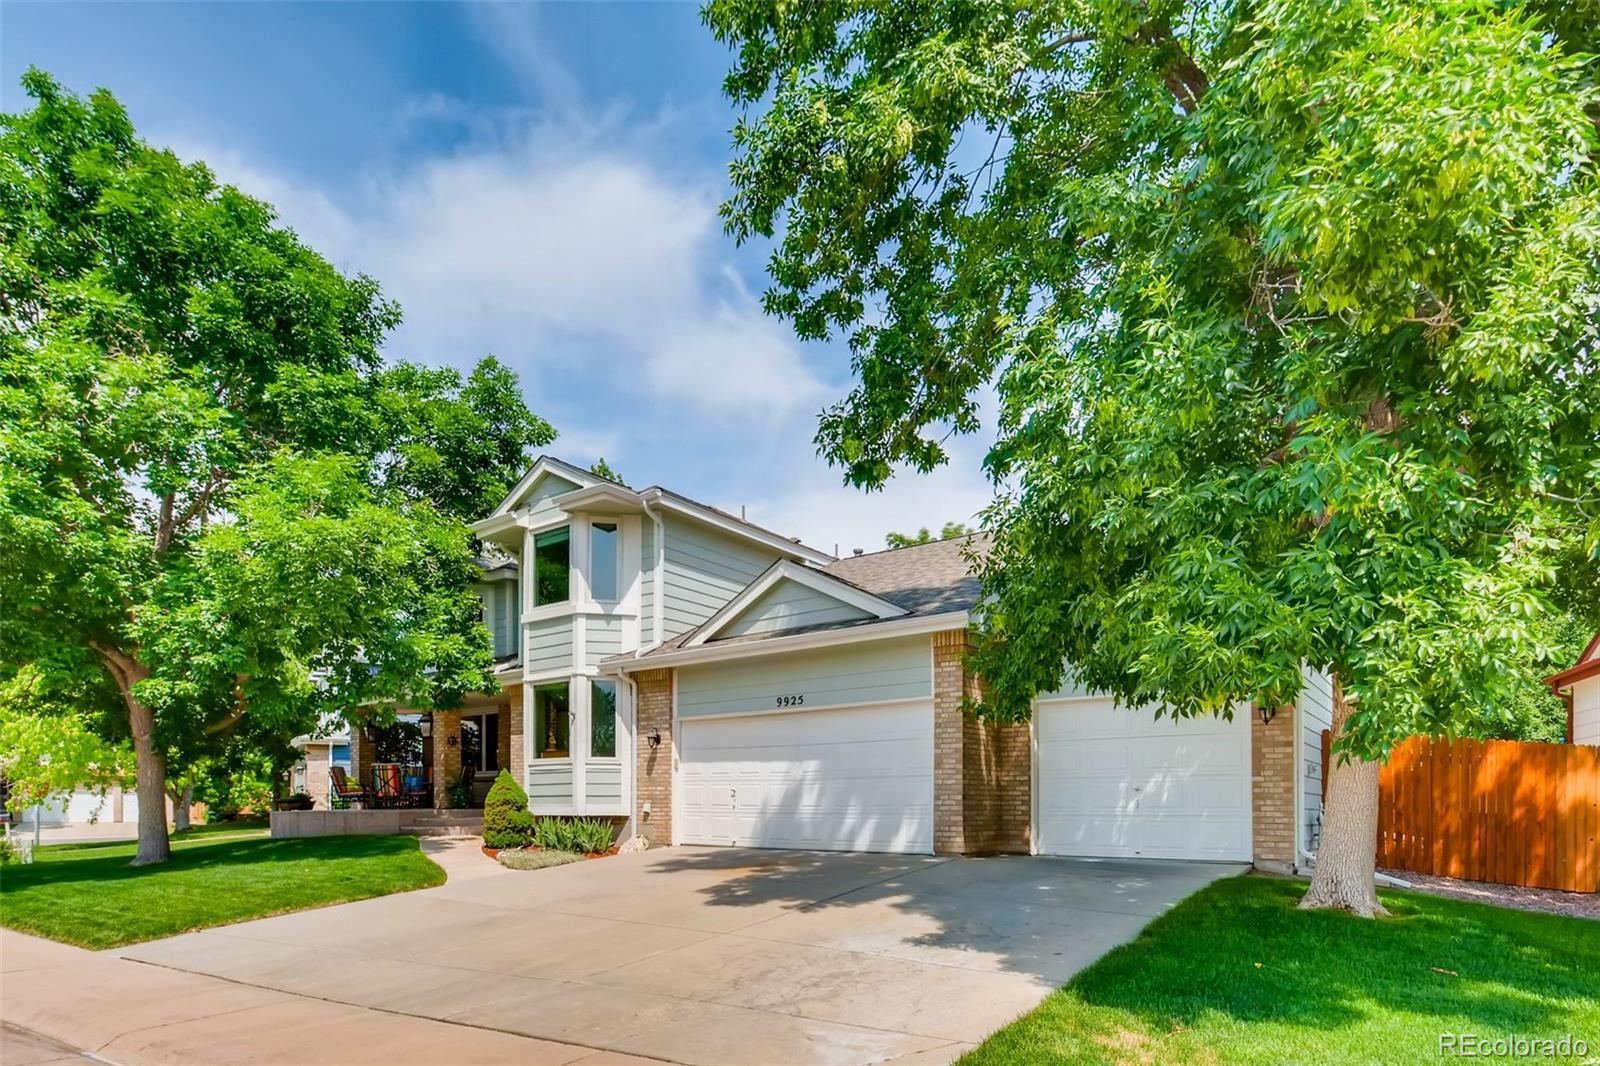 9925 W 97th Drive, Westminster, CO 80021 - #: 7869732